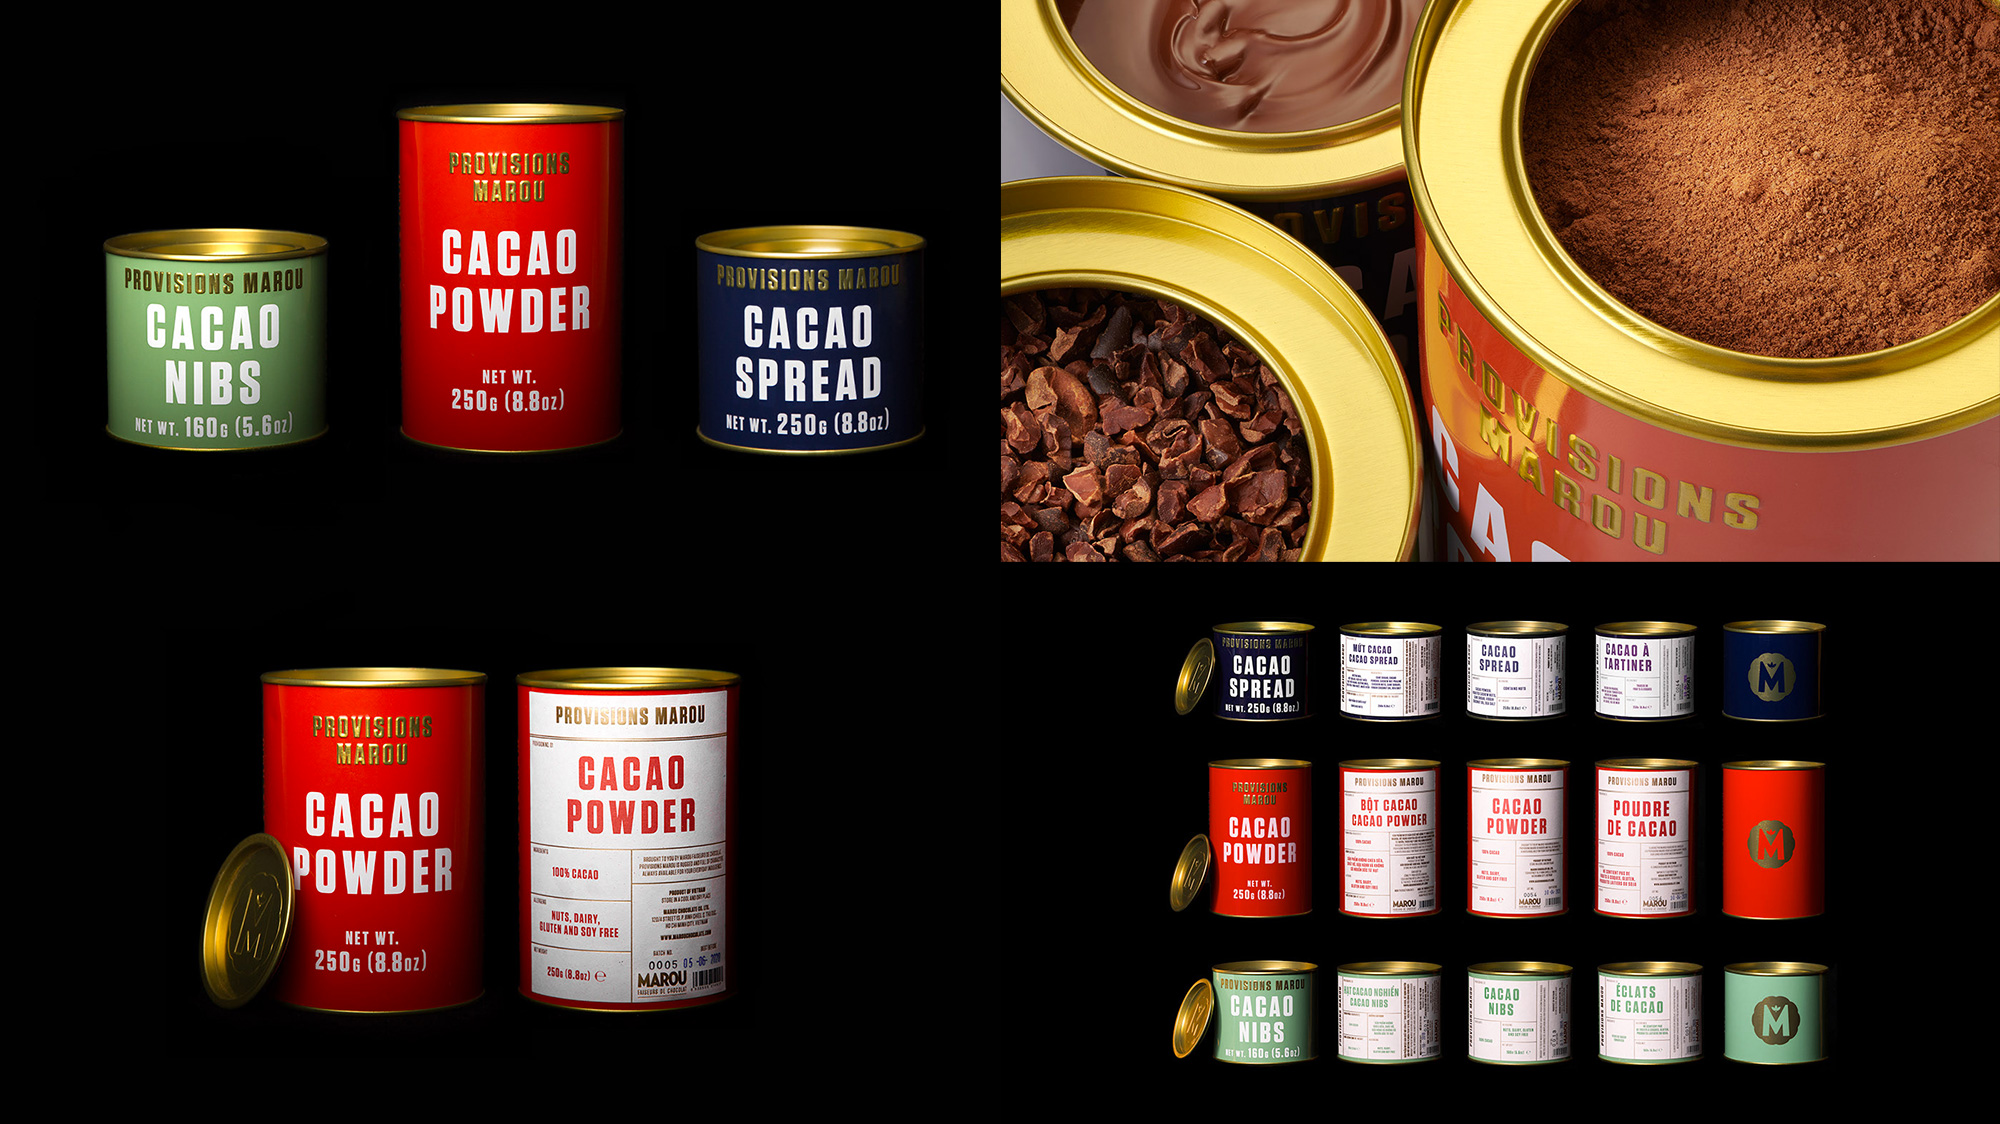 Provisions Marou by Rice Creative